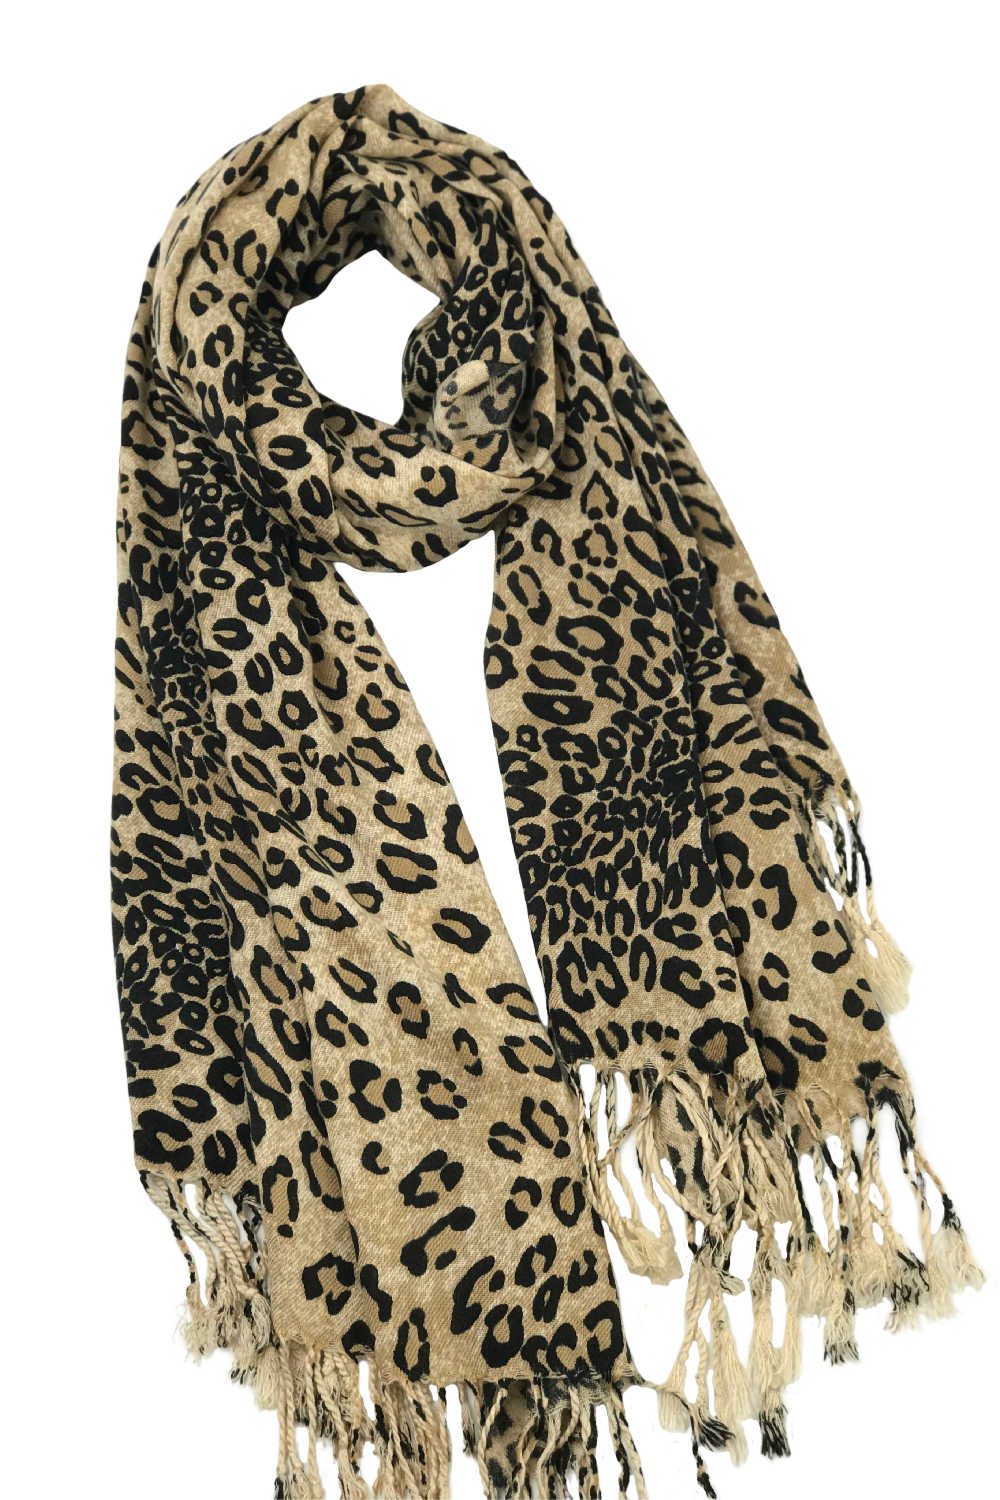 leopard-print-scarf-winter-shawl-brown-black-cream